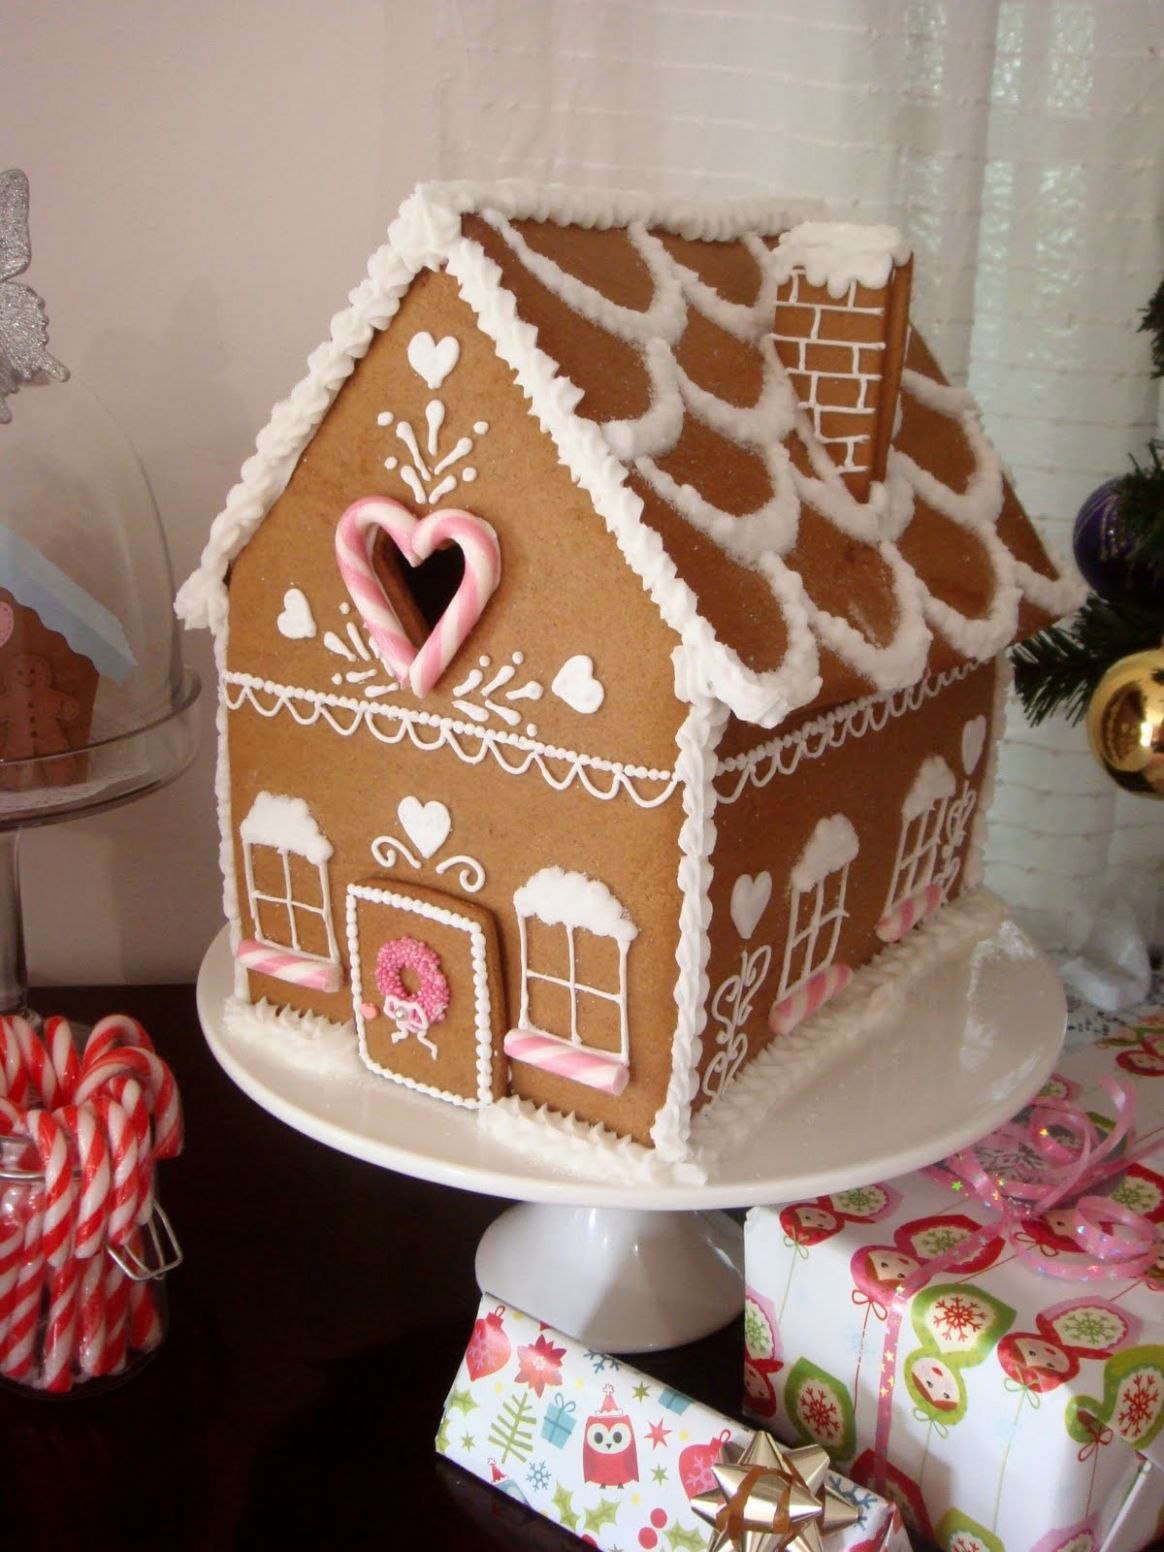 9+ Gingerbread House Decoration Ideas & Photos 9 - gingerbread house inspiration